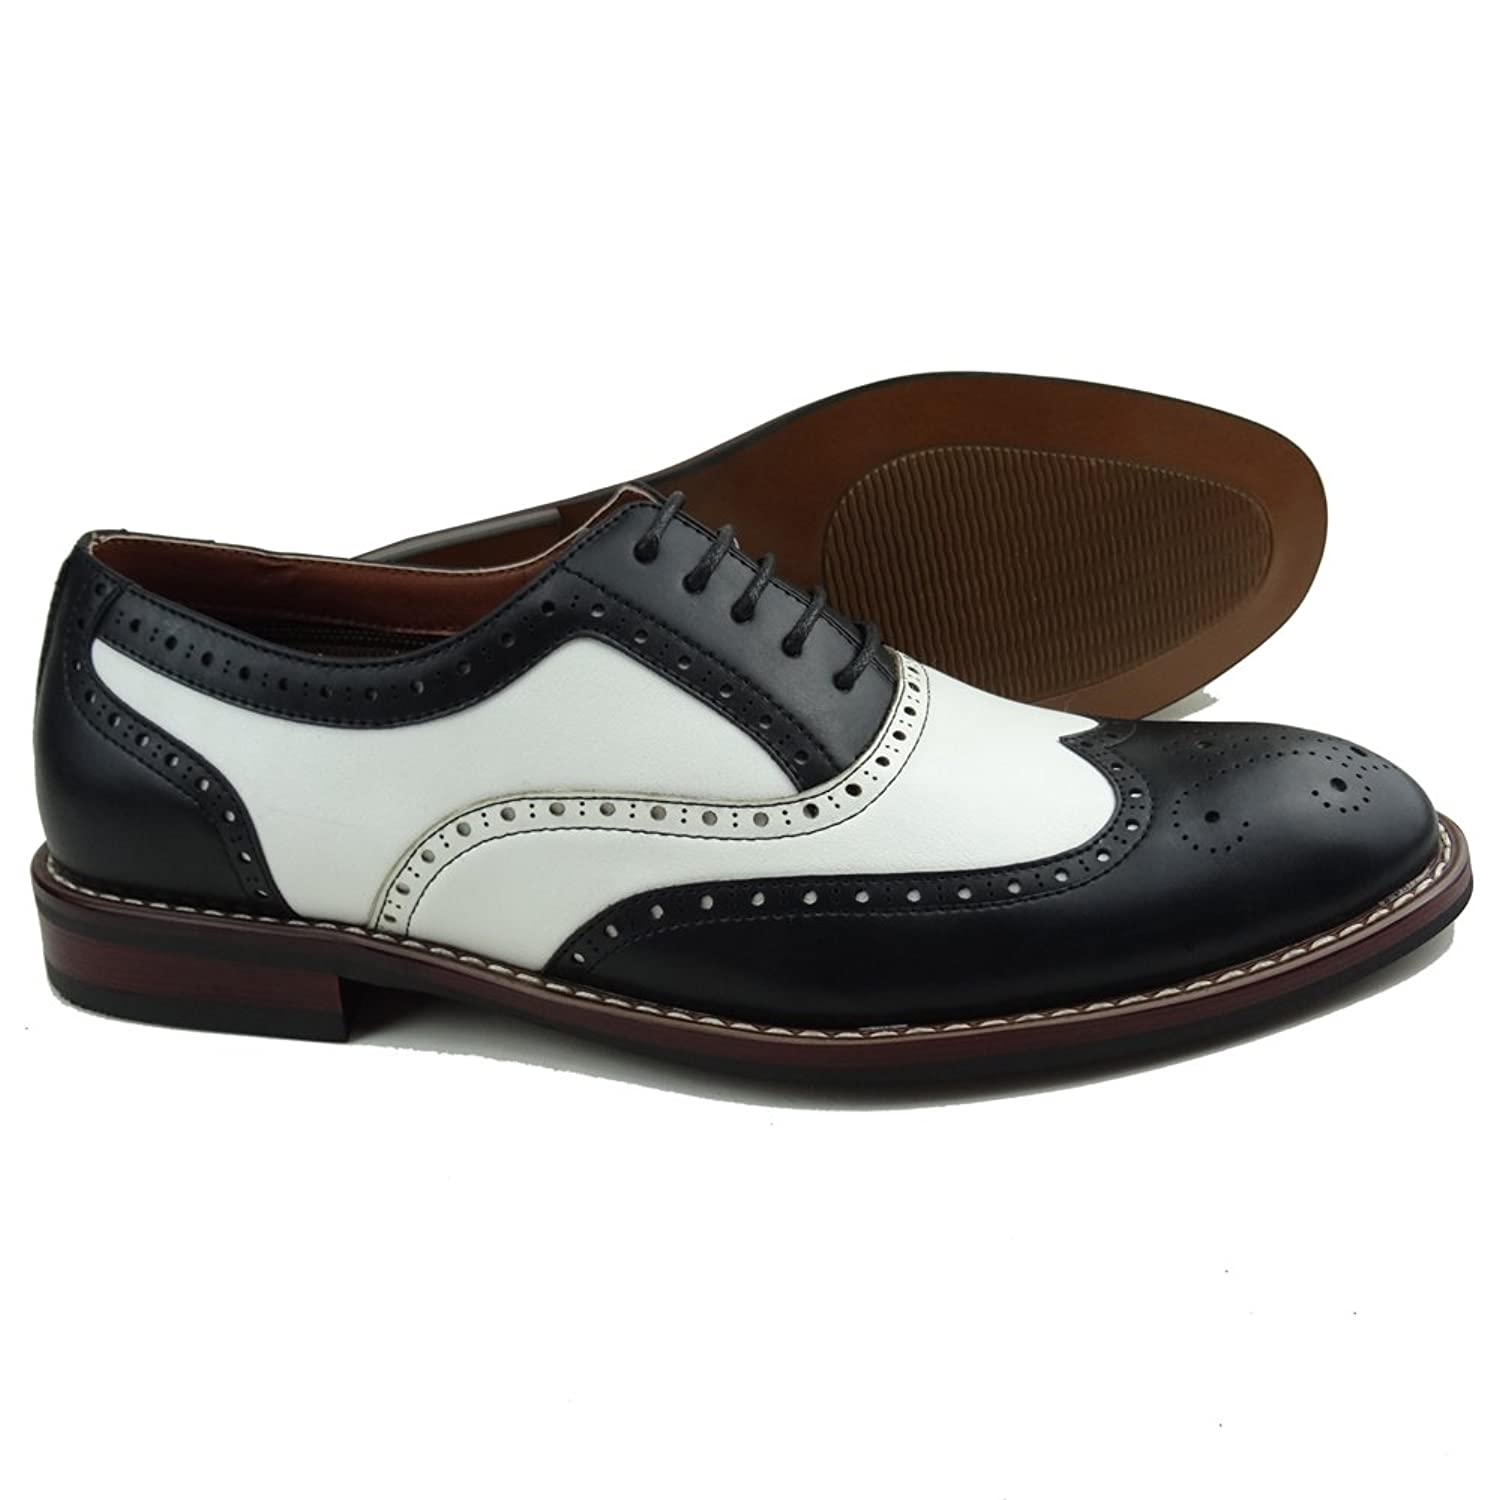 1950s Style Mens Shoes  Mens Black White Lace Up Wing Tip Perforated Oxford Dress Shoes $34.99 AT vintagedancer.com